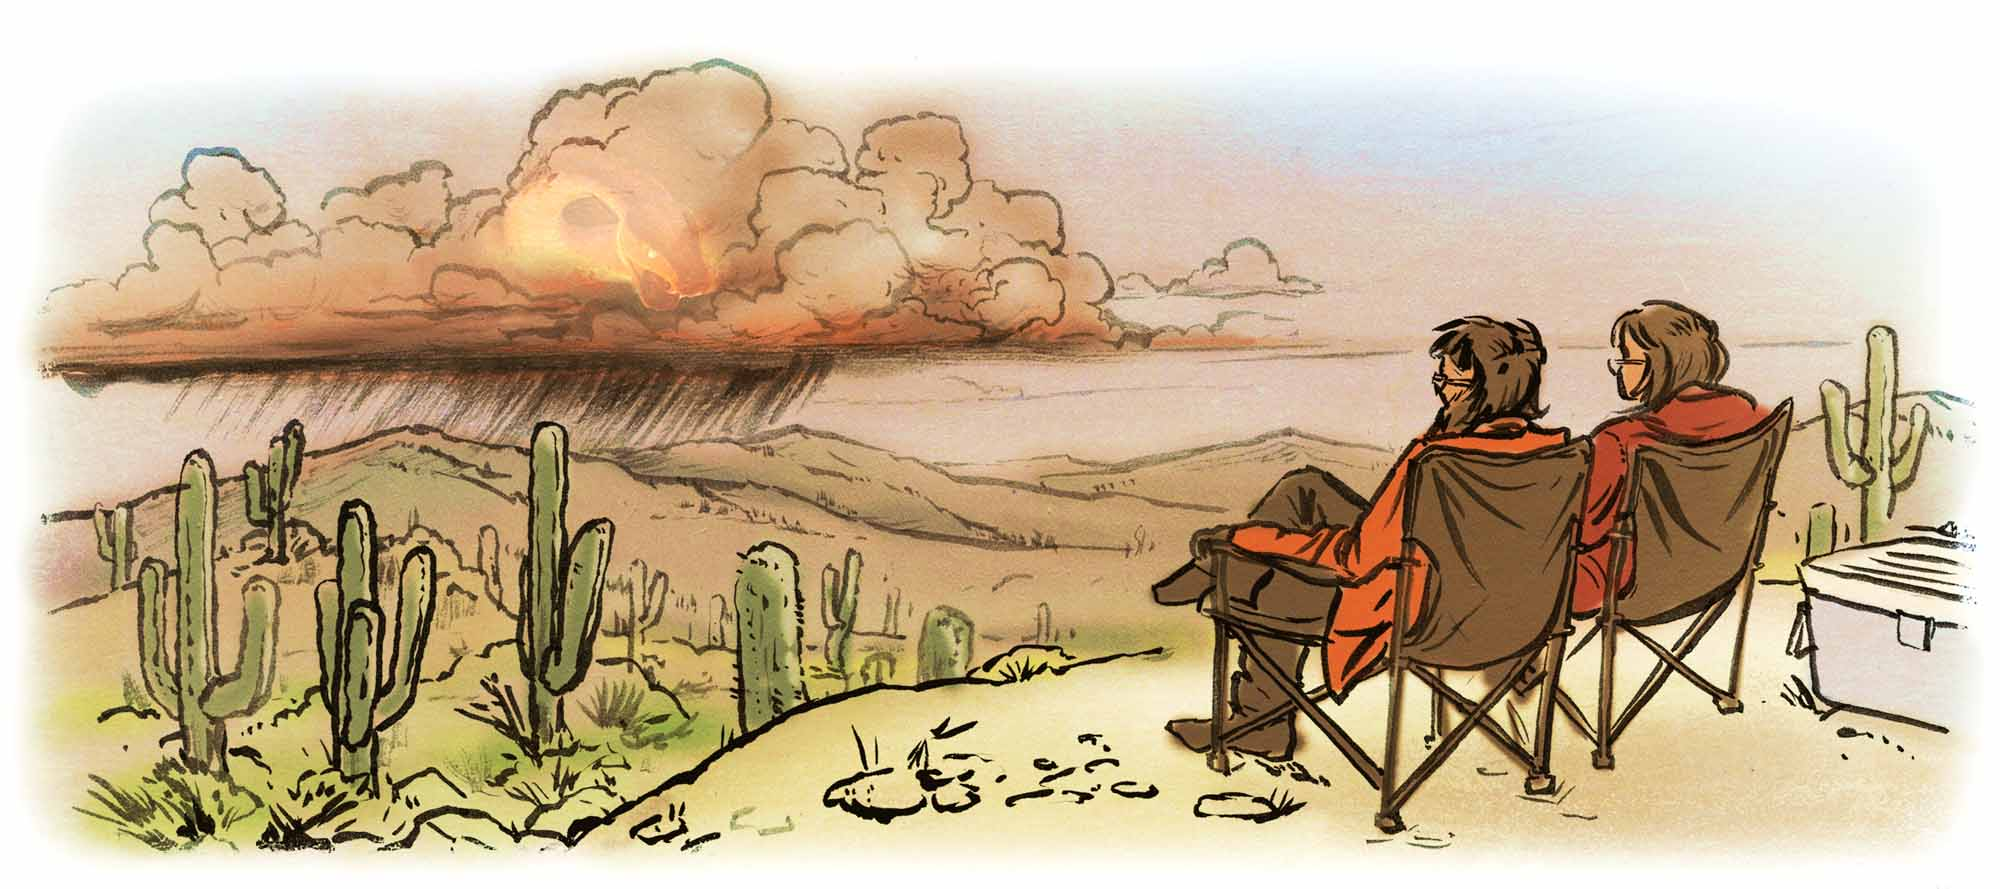 Big-Brain-No-Tools-Searching-for-Survival-couple-sitting-desert-Dave-Barnes-illustration